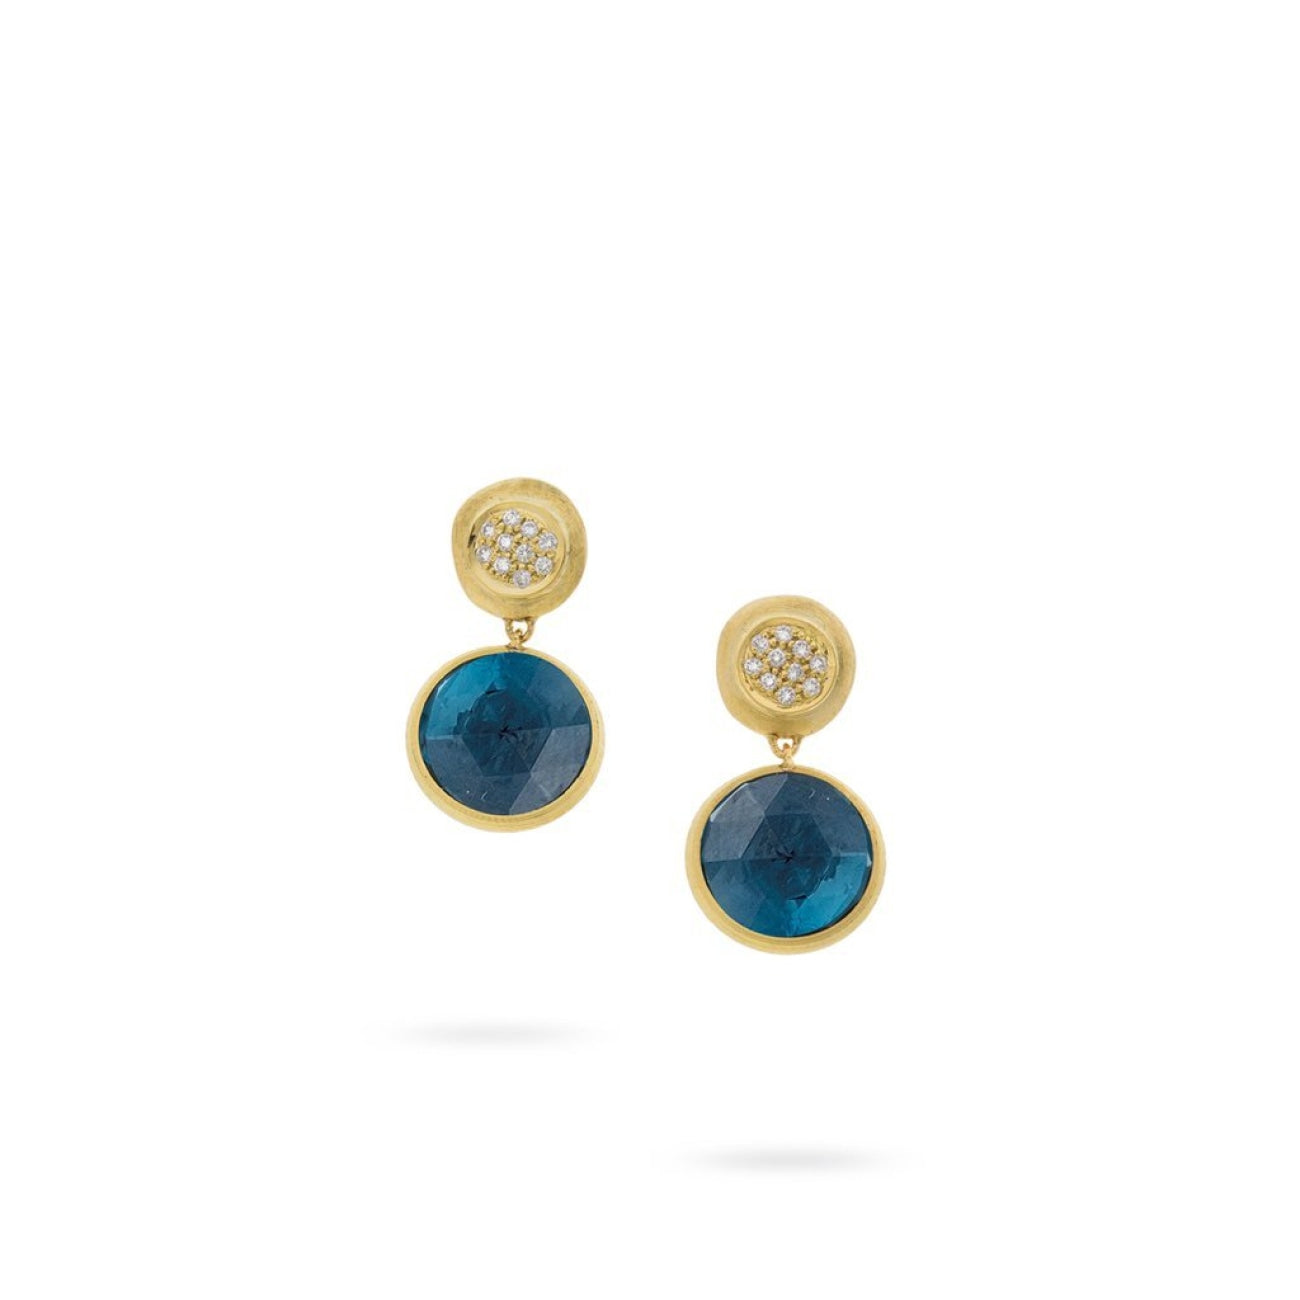 Marco Bicego Jewelry - 18K Yellow Gold and London Blue Topaz with Diamond Drop Earrings | Manfredi Jewels